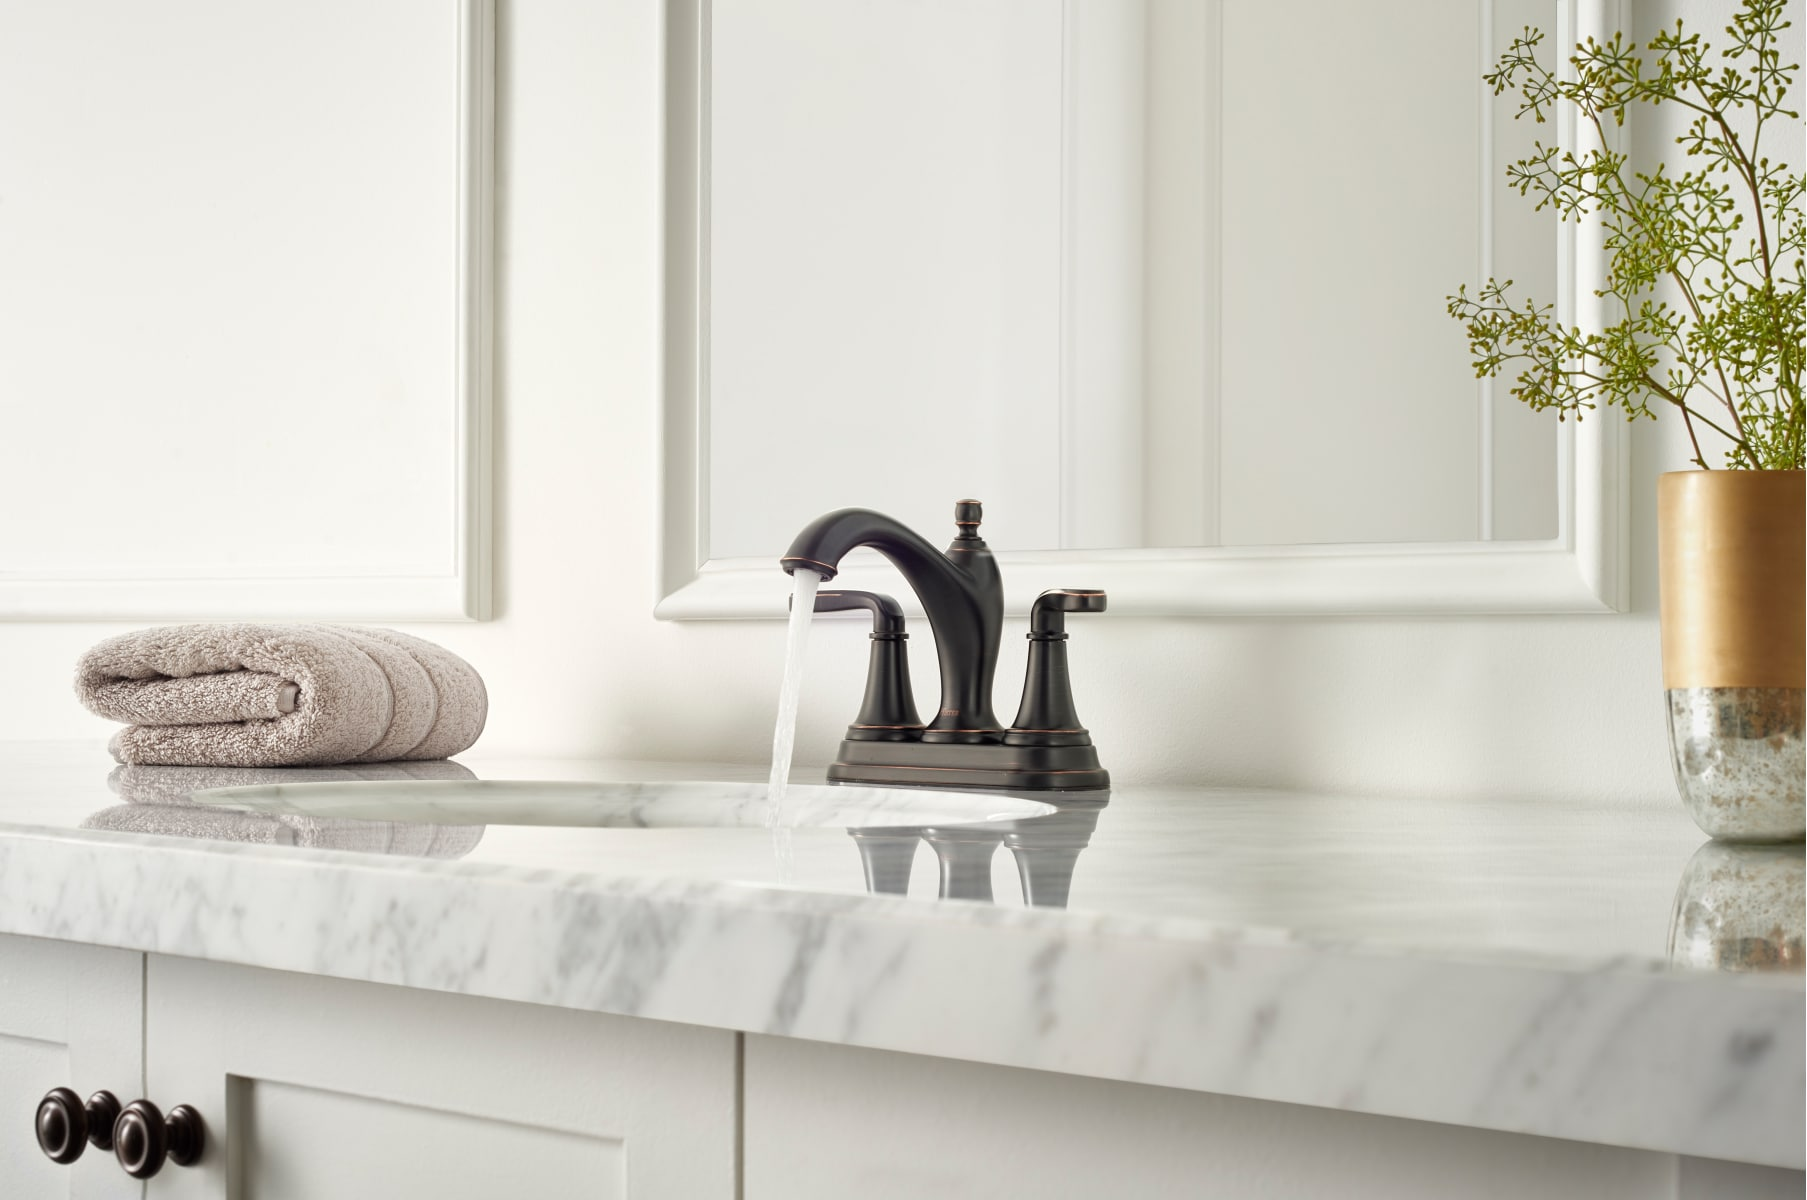 Pfister LG48-MG0Y Tuscan Bronze Northcott Centerset Bathroom Faucet ...